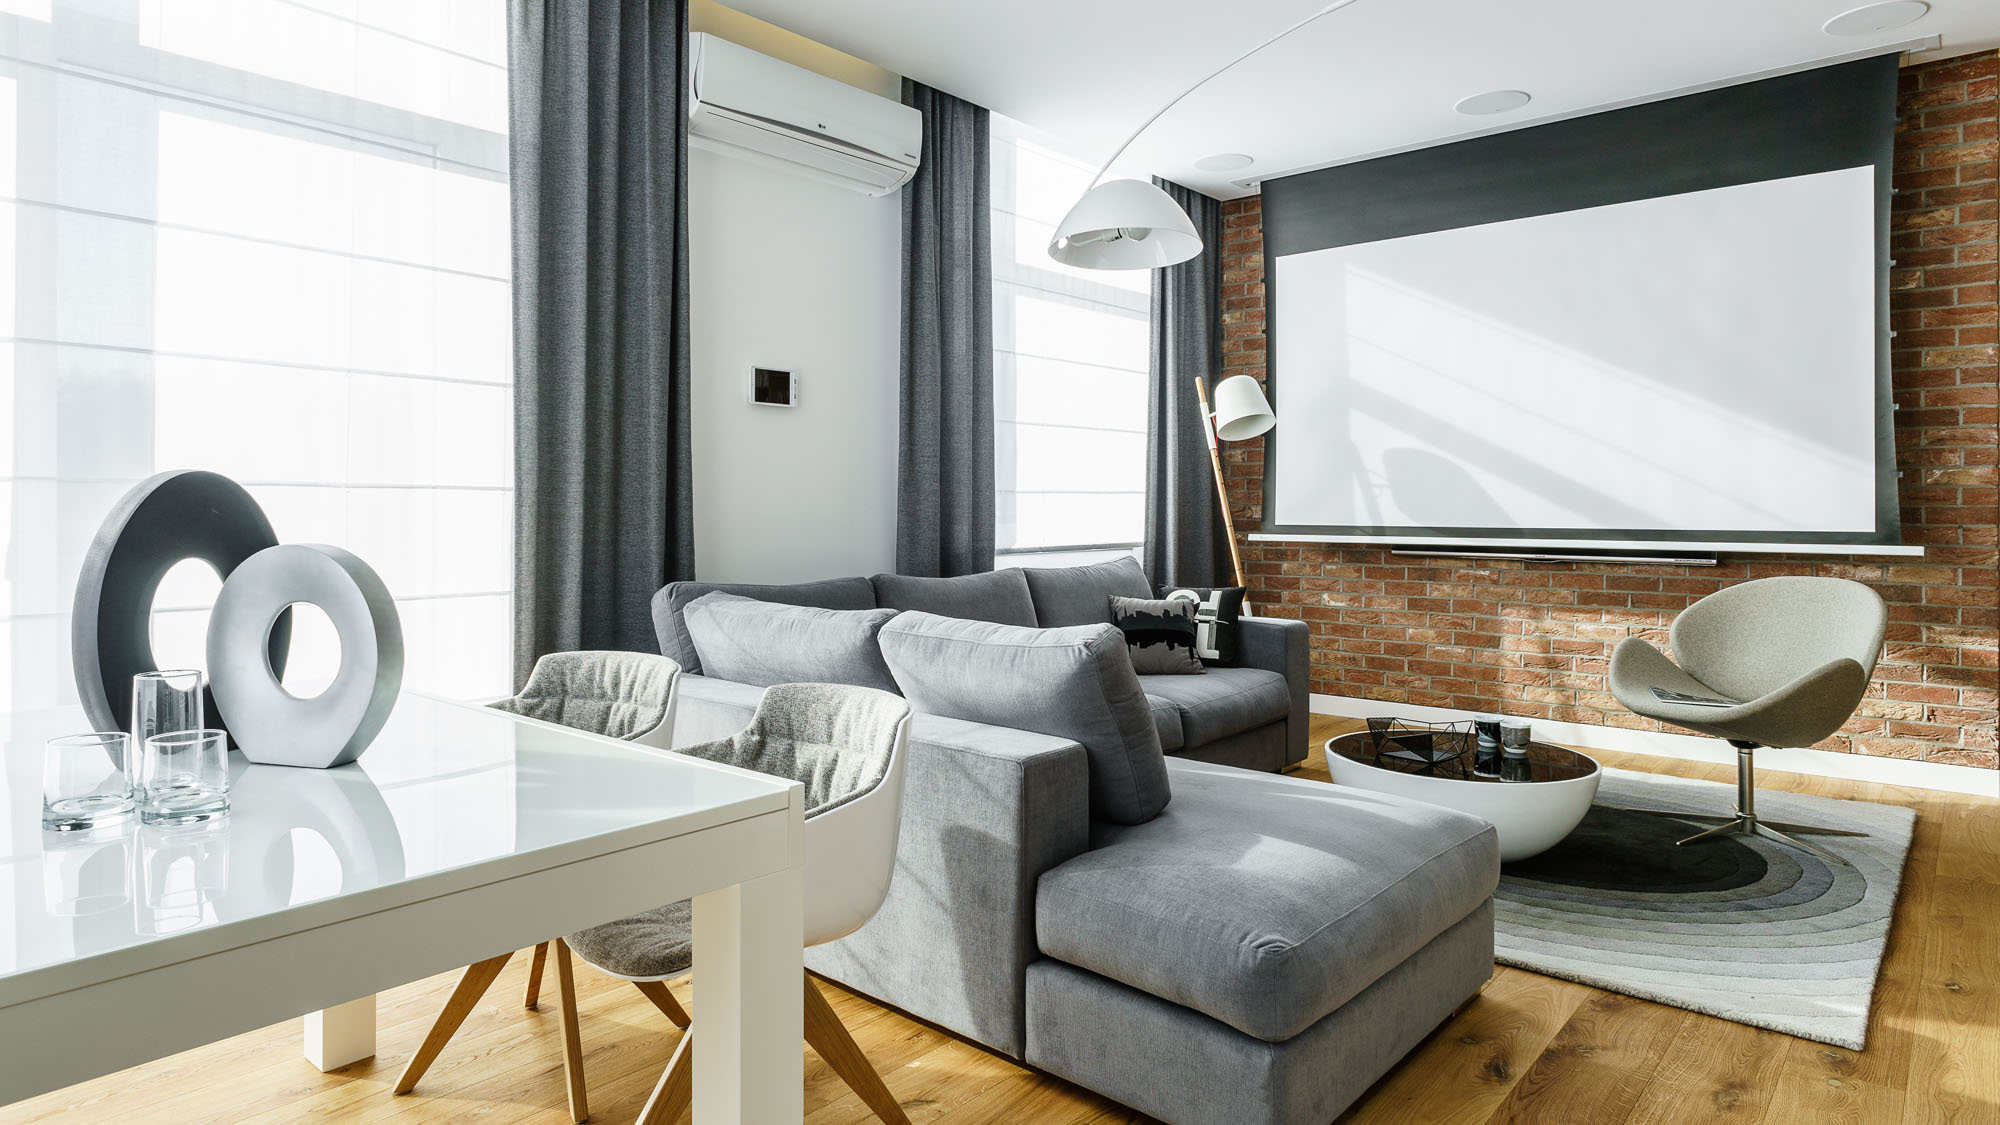 Modern Metallic, Wooden, White Theme Three Bedroom Apartment in Gdynia by Dragon Art-21